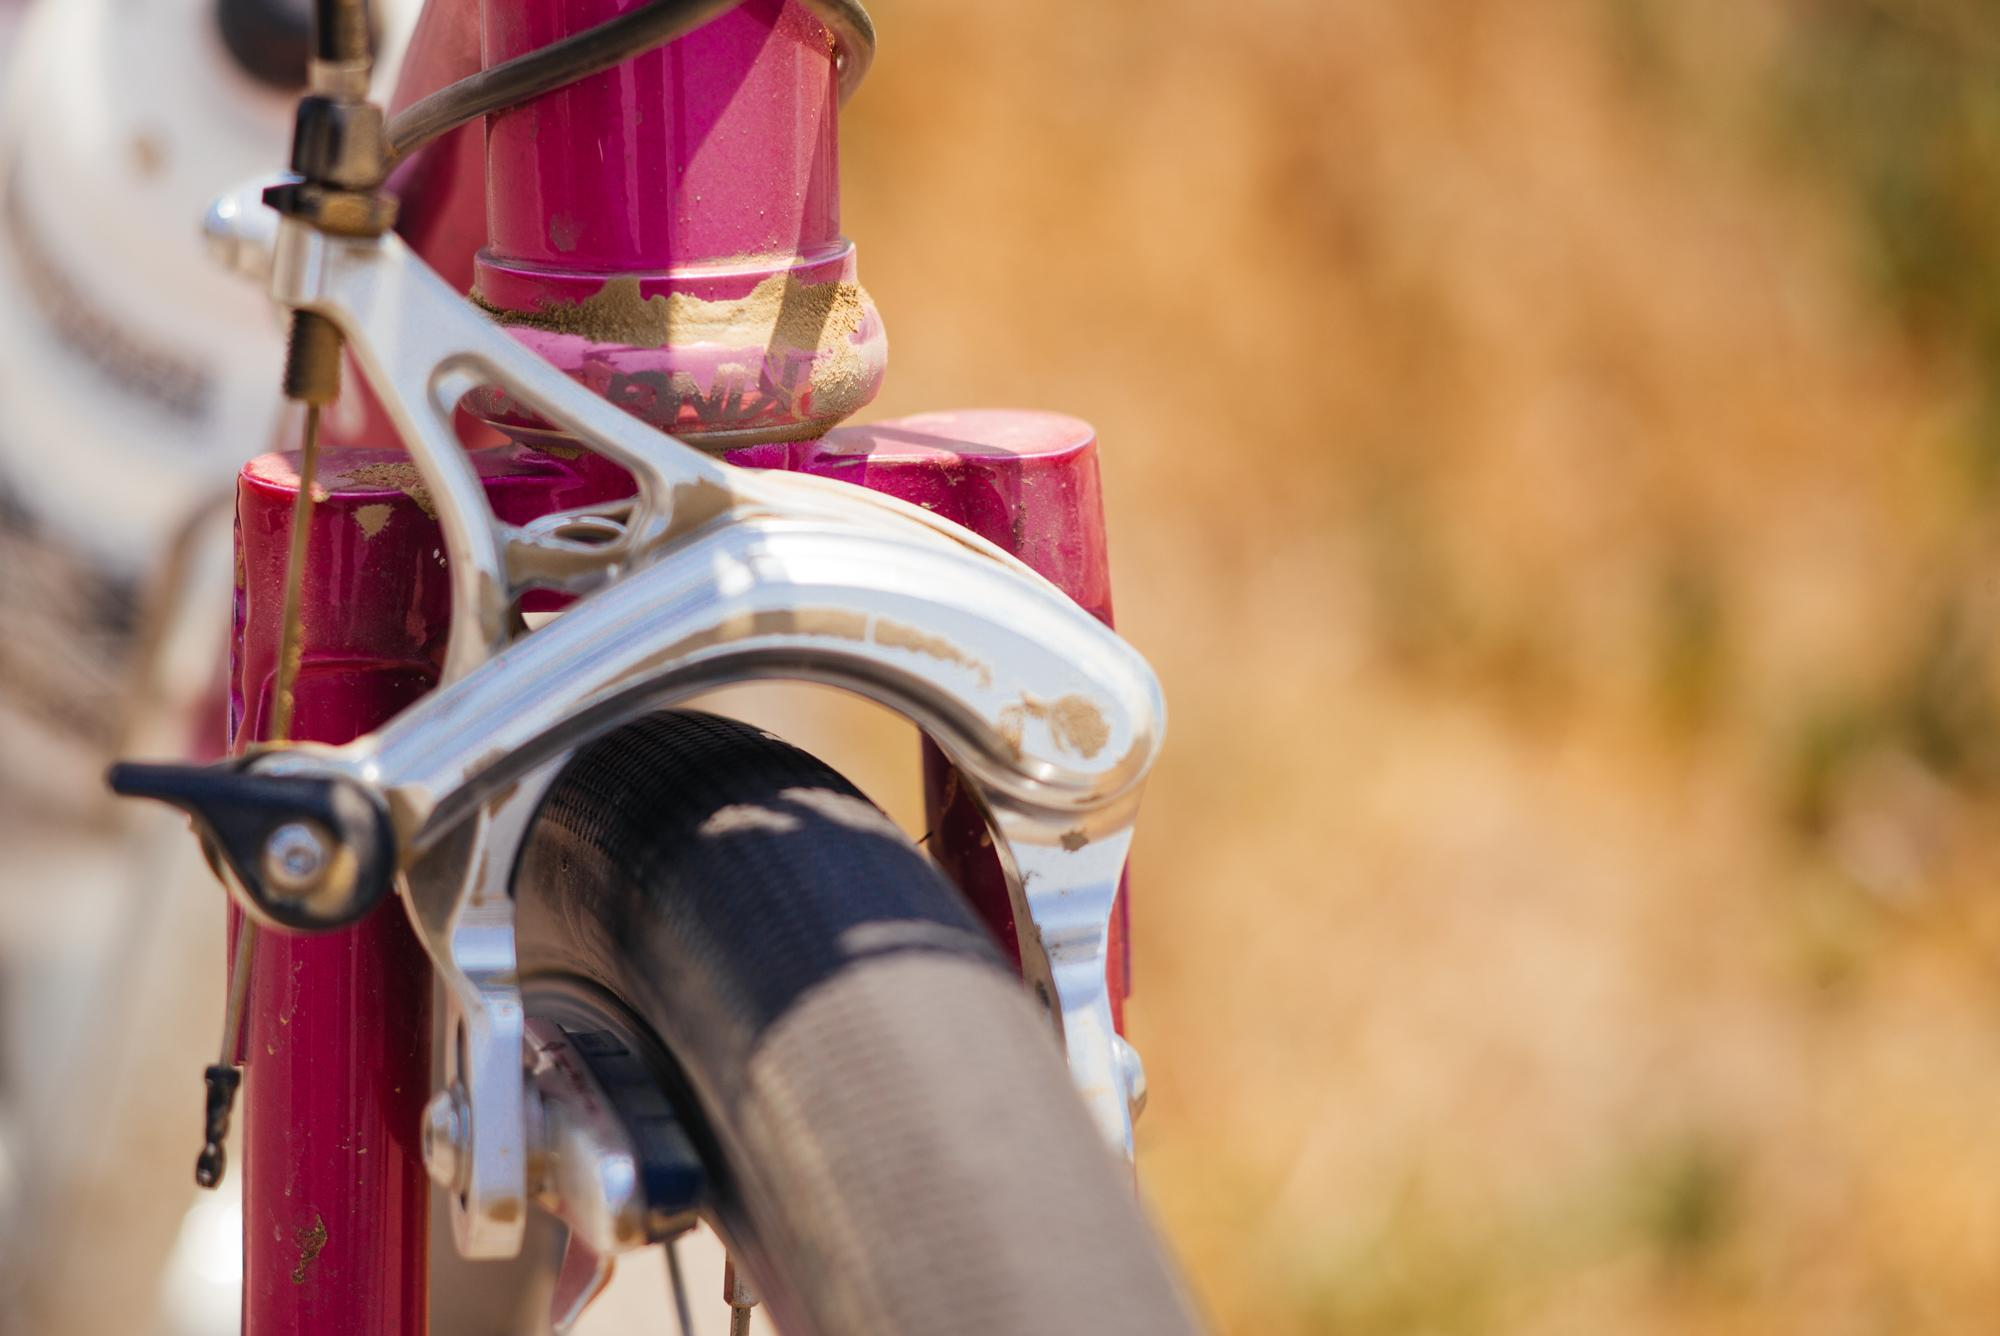 Getting Dirty with Kyle's Campy Athena Mr. Pink Chubby Road on Dirt Mulholland